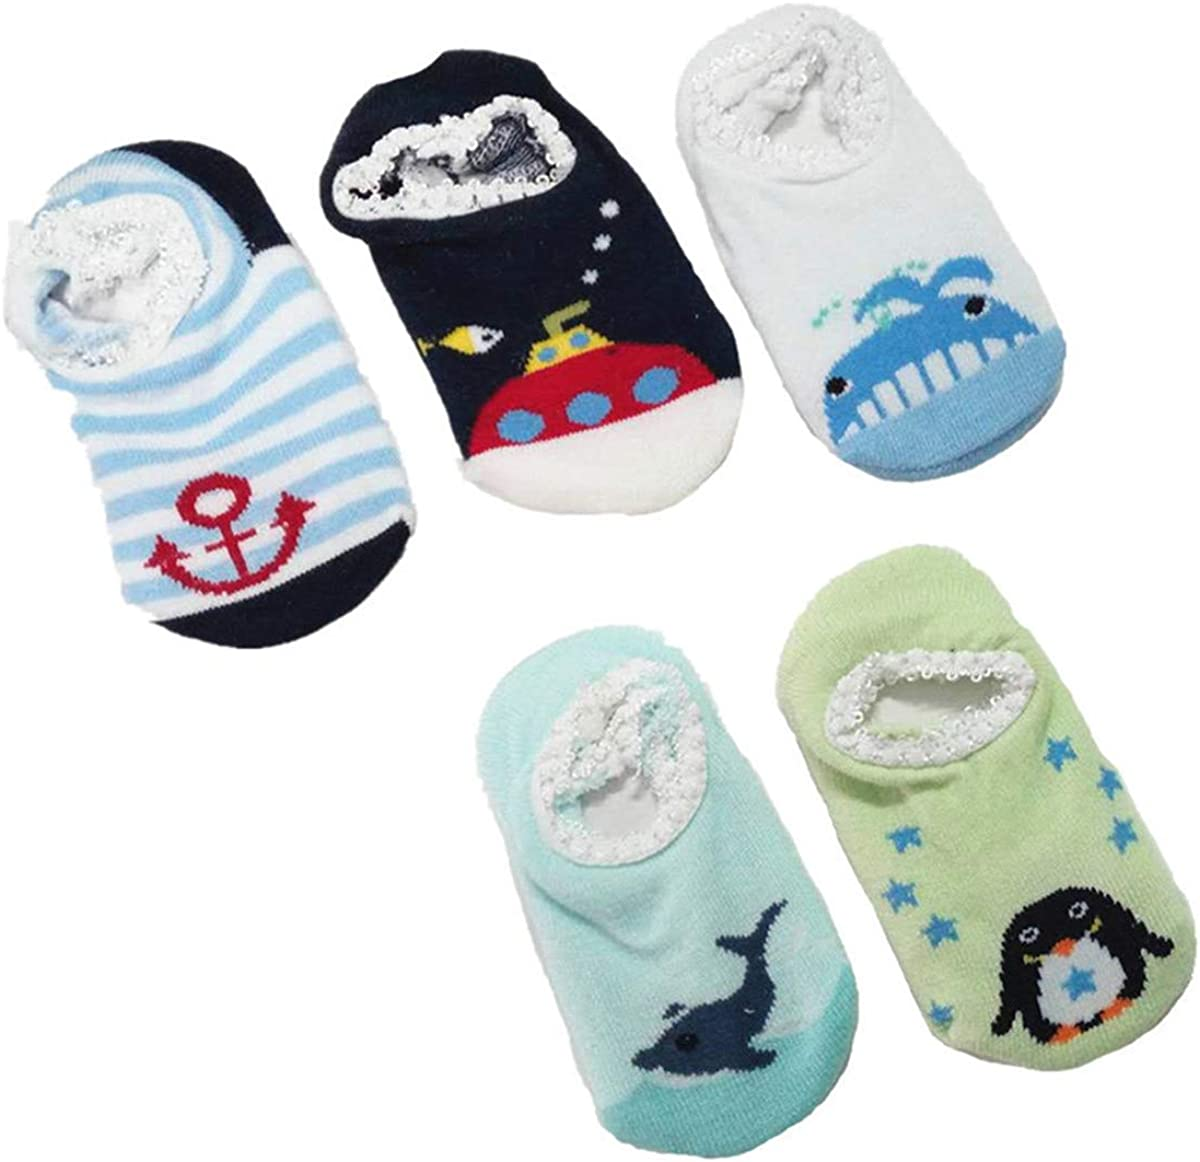 1 Pairs Infant Baby Girls Boys Stripe Comfortable Socks Anti-Slip Slipper Socks